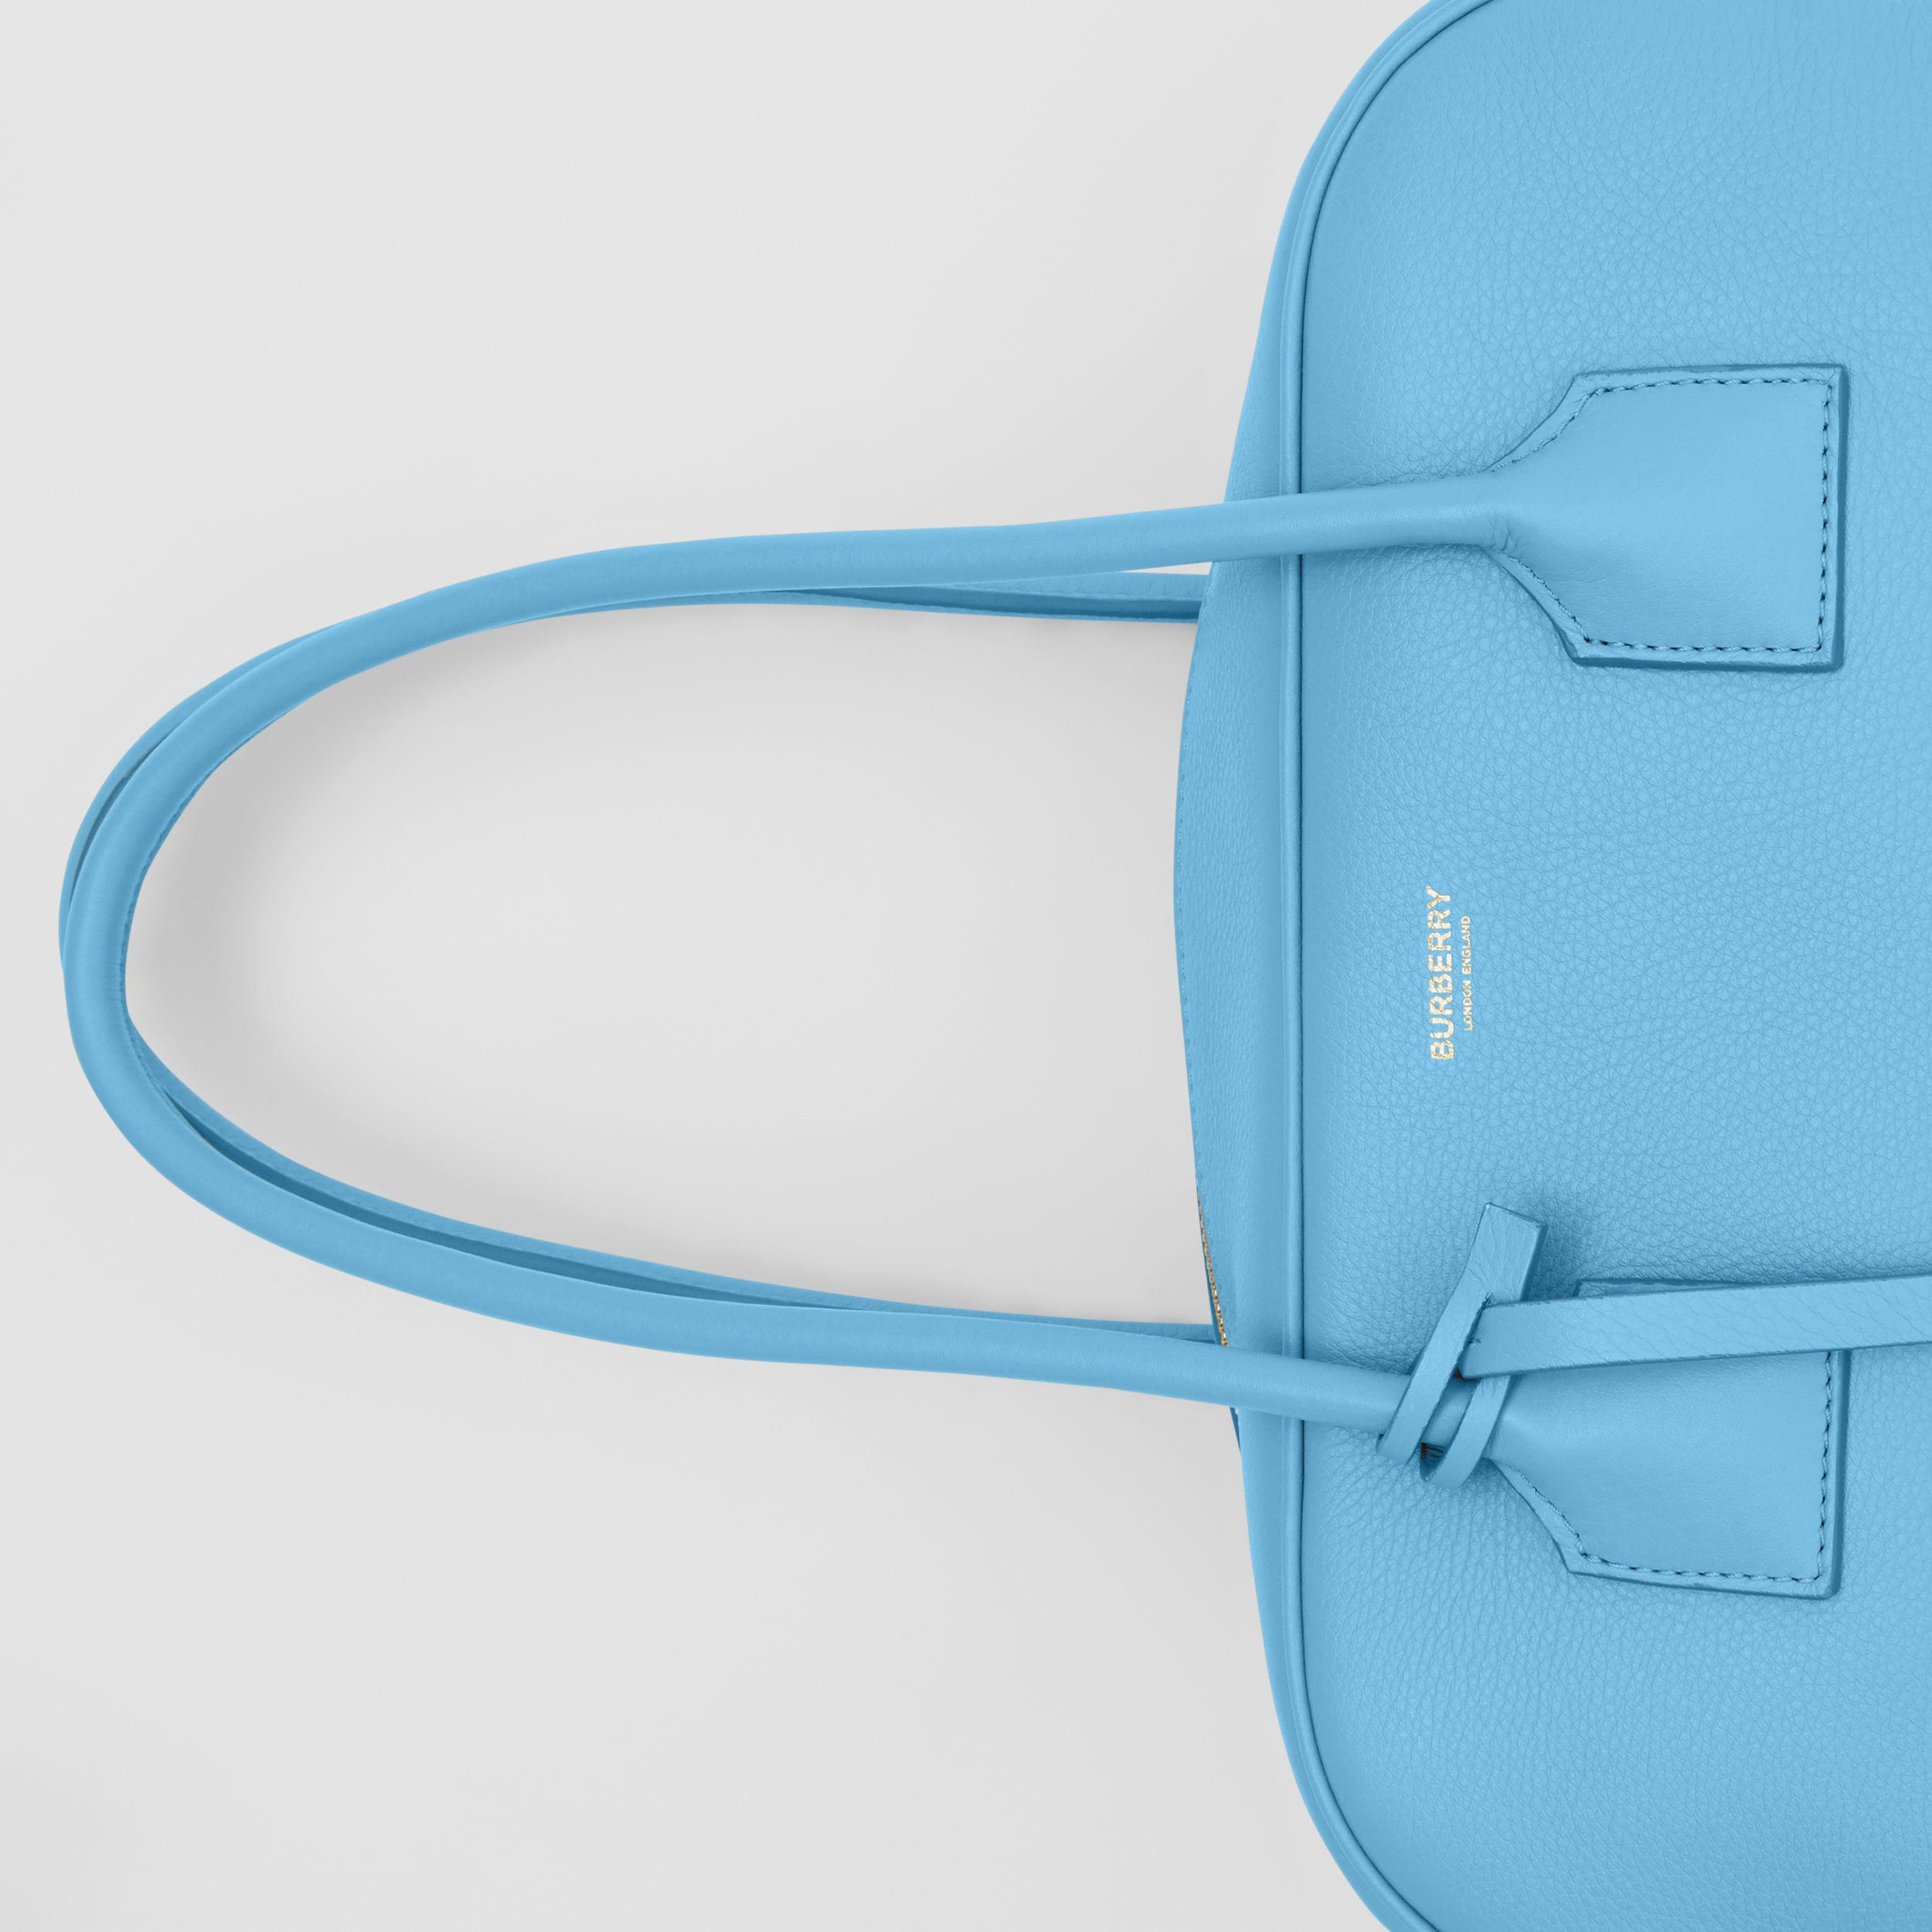 Medium Leather Half Cube Bag in Blue Topaz - Women | Burberry - 2